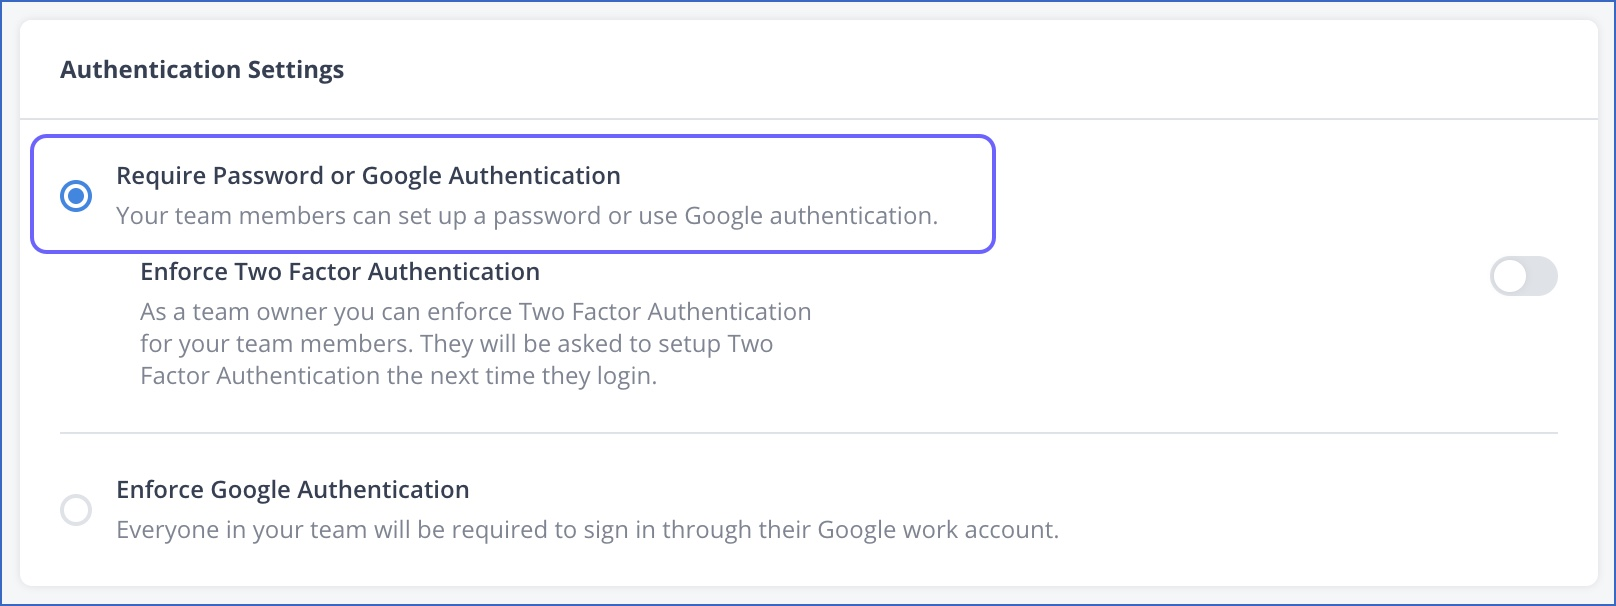 Require password or Google Authentication